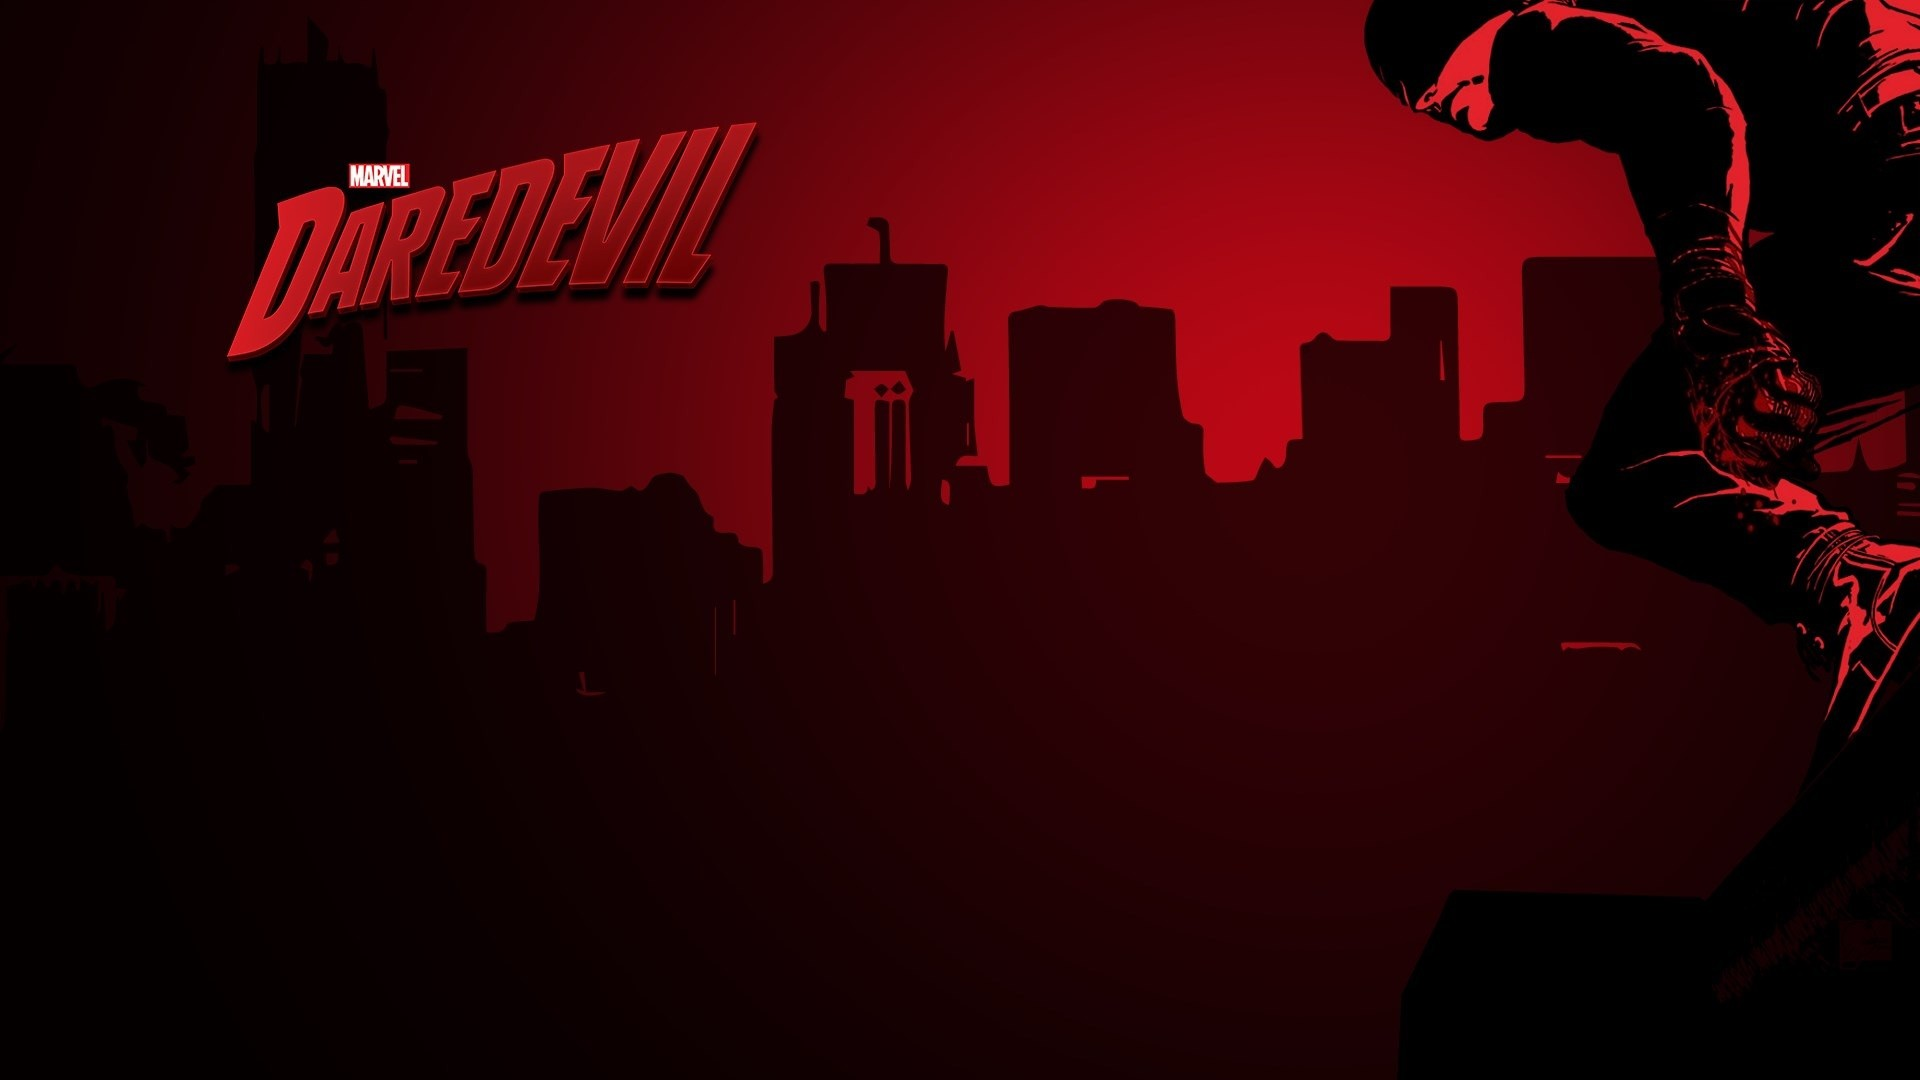 Res: 1920x1080, daredevil hd wallpaper